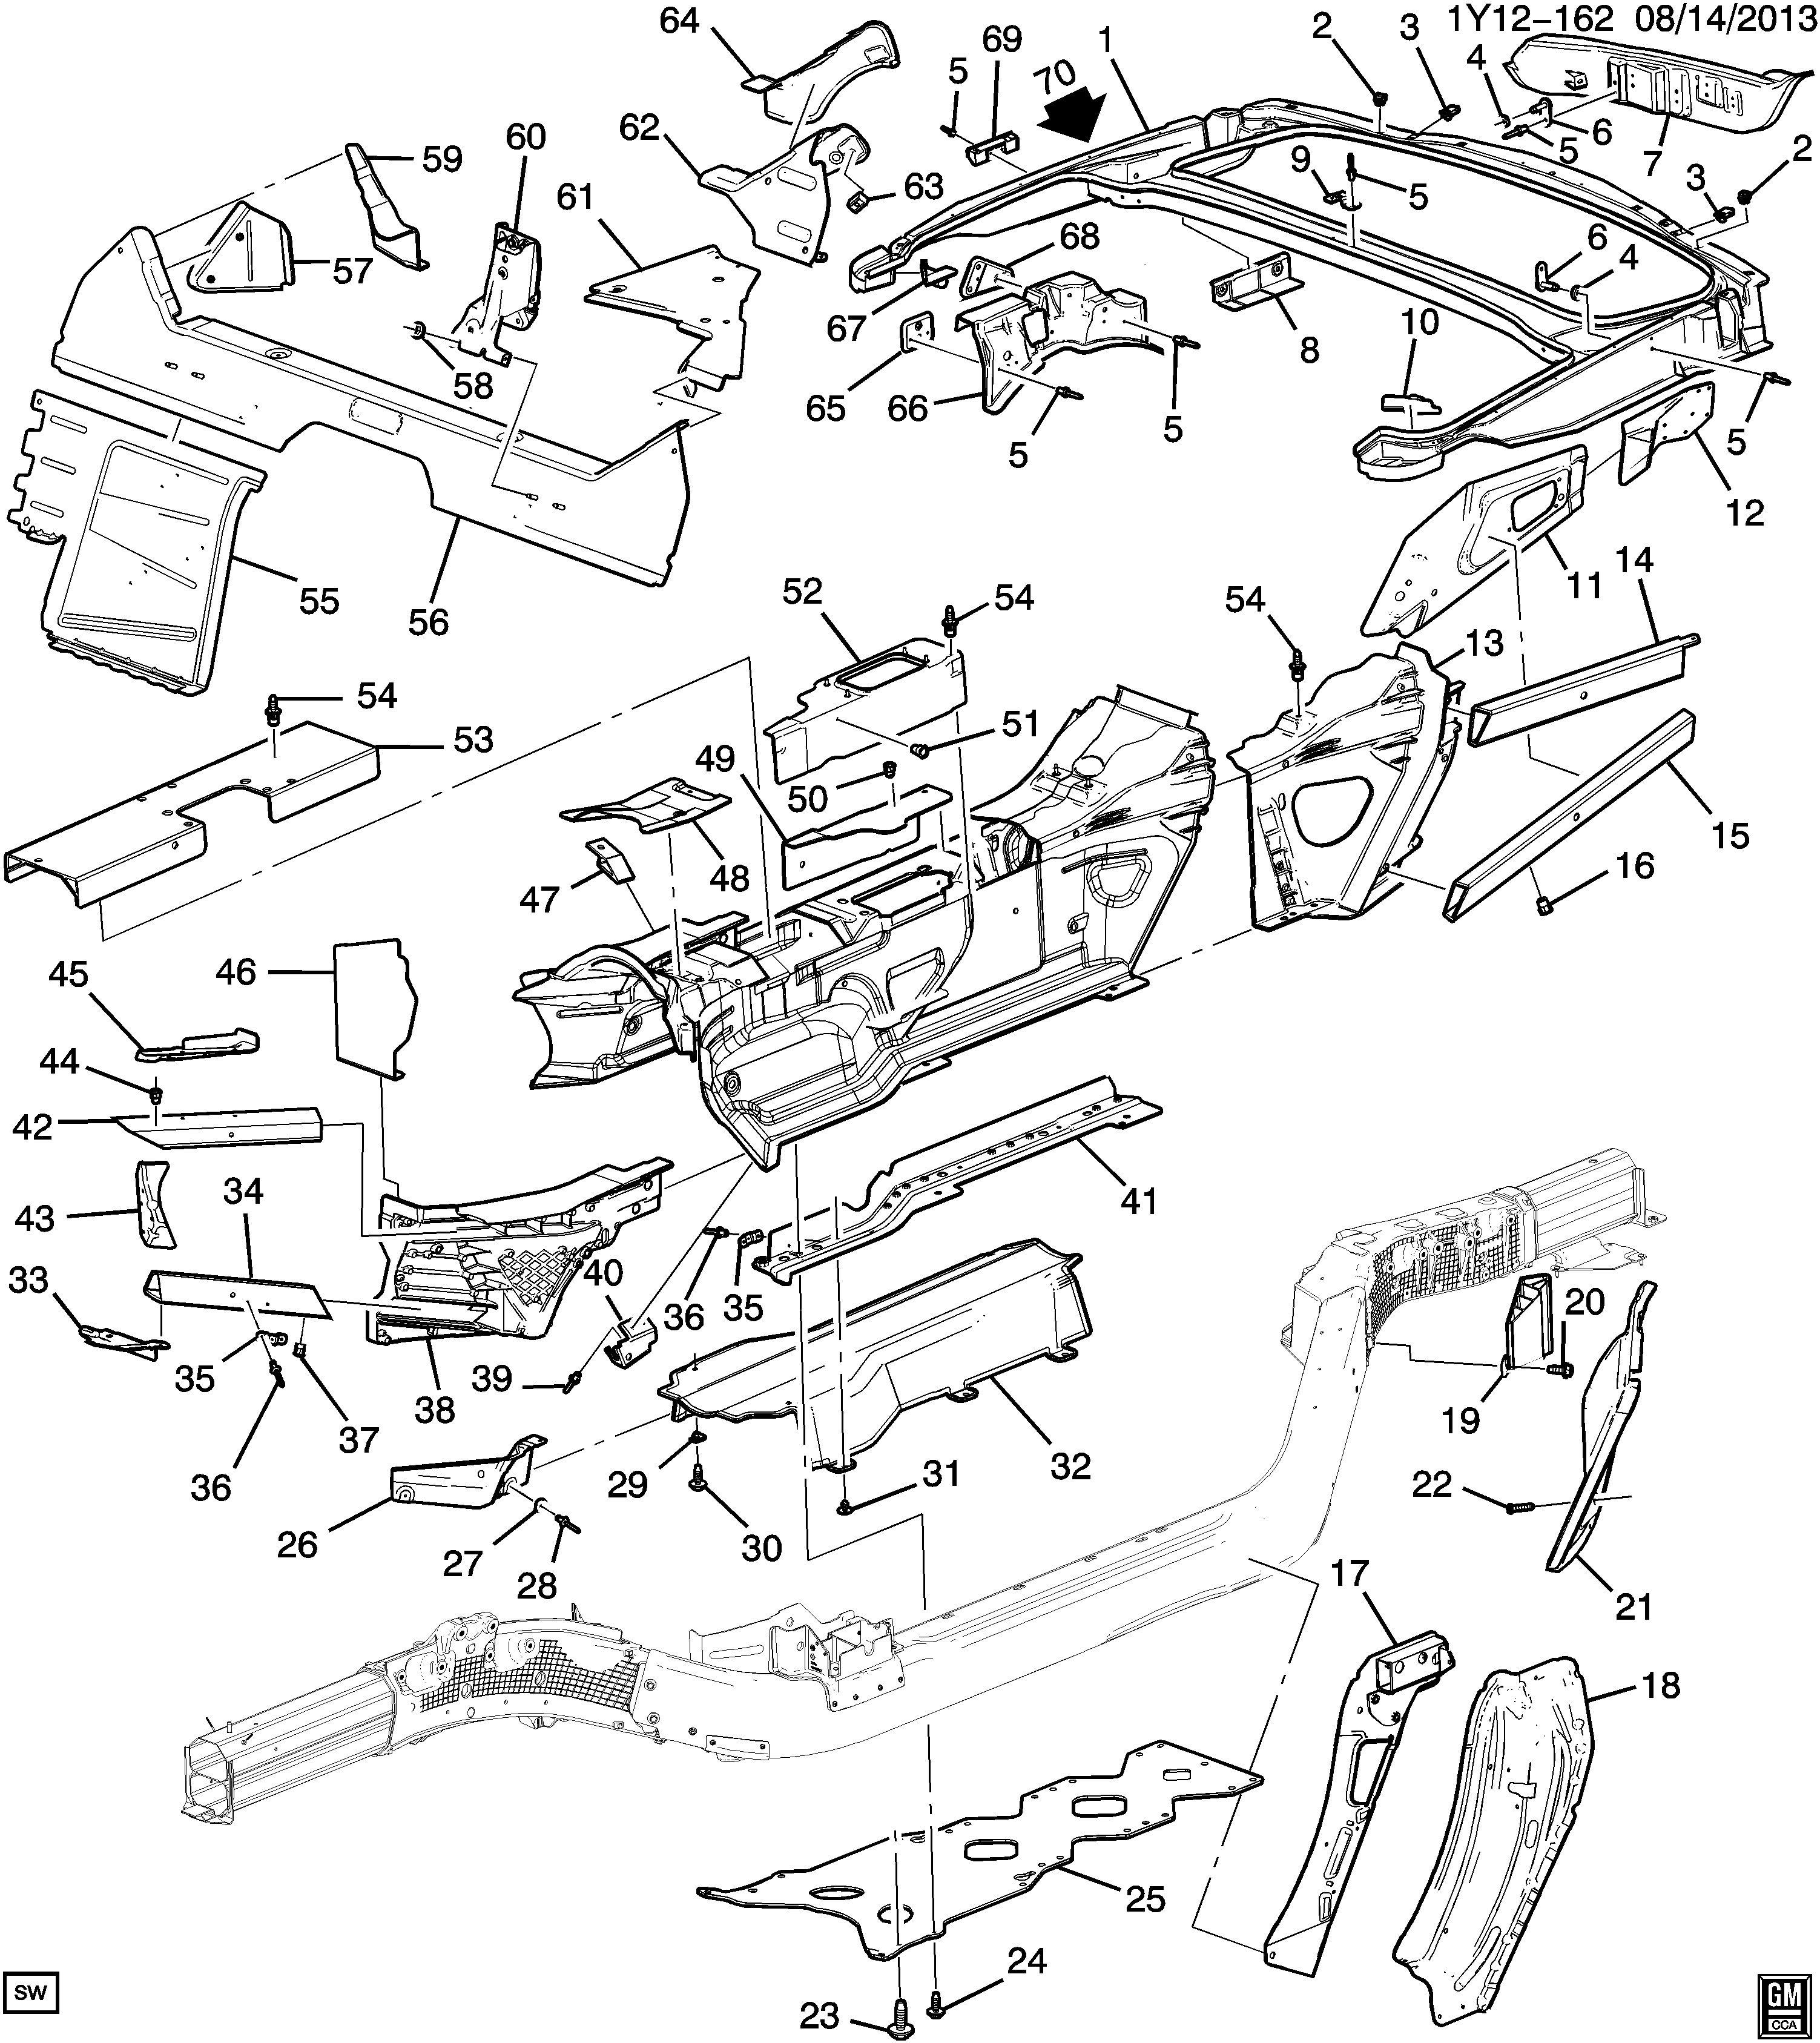 Chevrolet Express Floor Pan Stud Nut Chassis